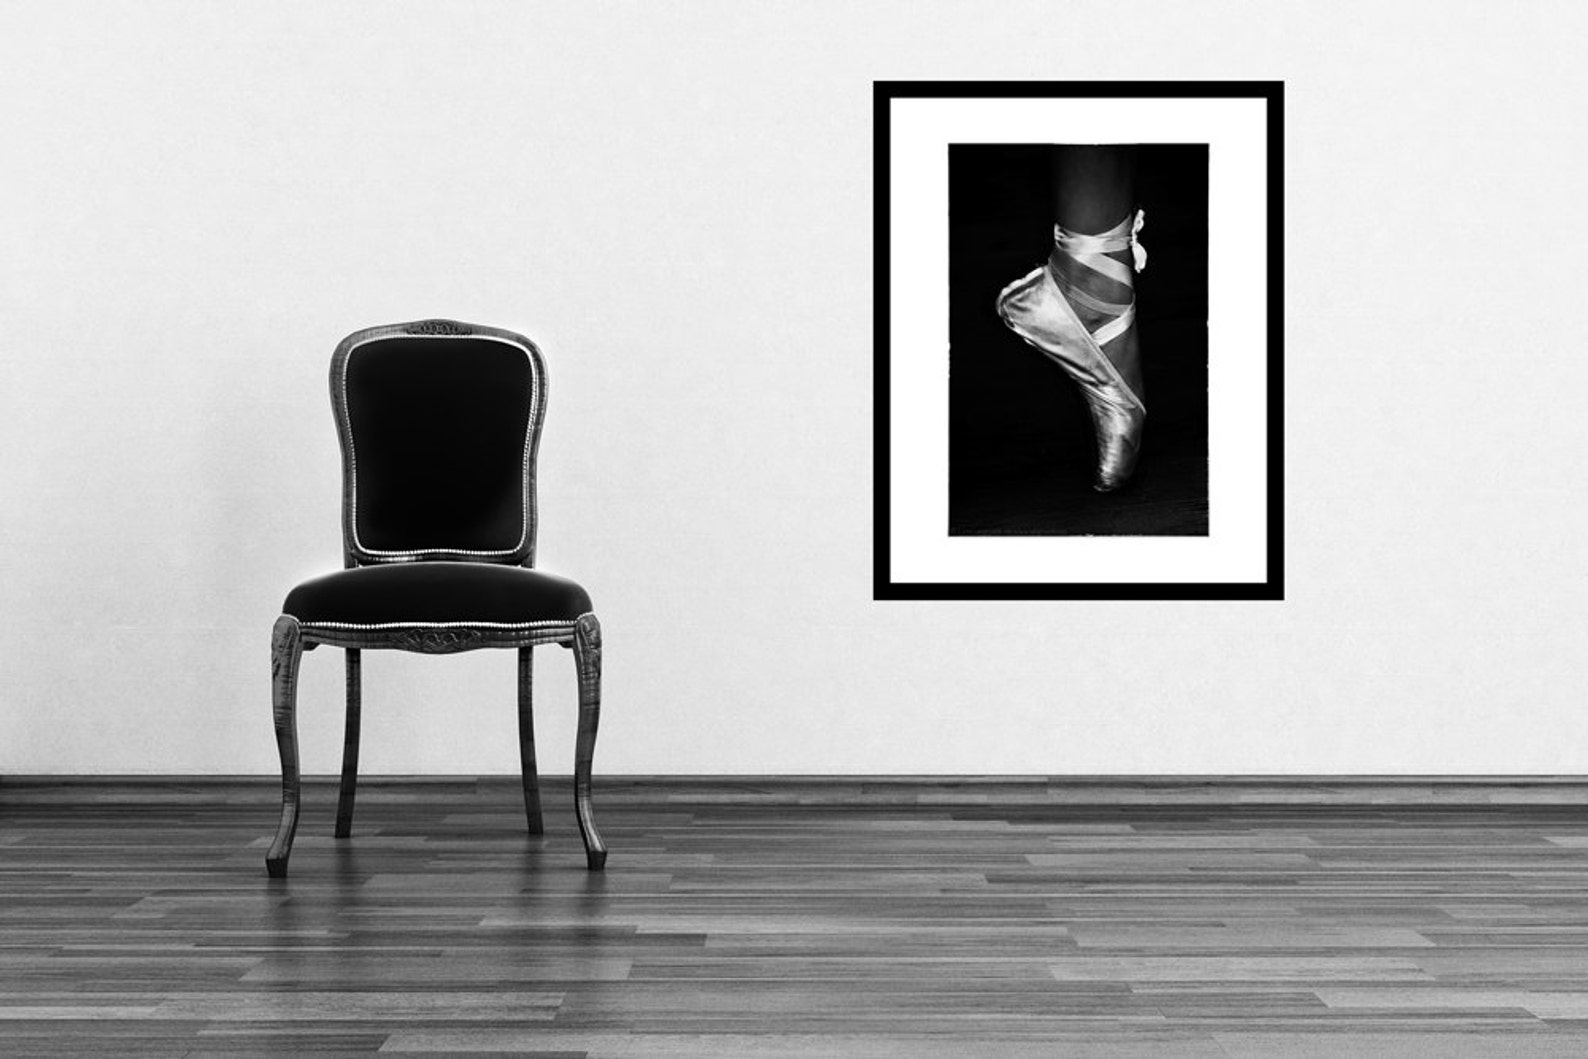 ballet photography - ballerina en pointe, black and white photography, ballet, dance, ballet wall prints, ballet wall art - &quo